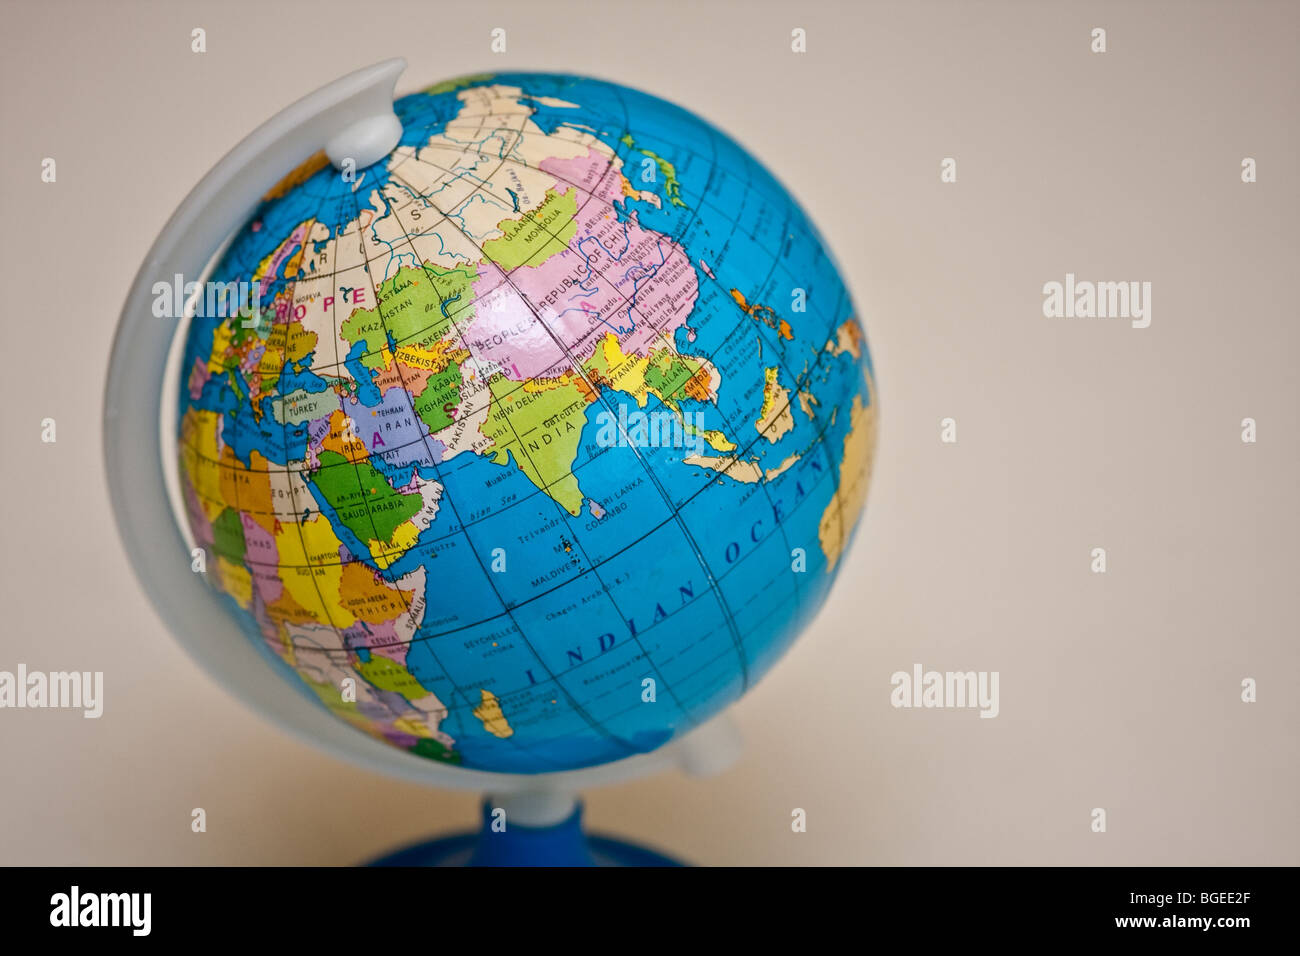 globe world map toy earth planet - Stock Image